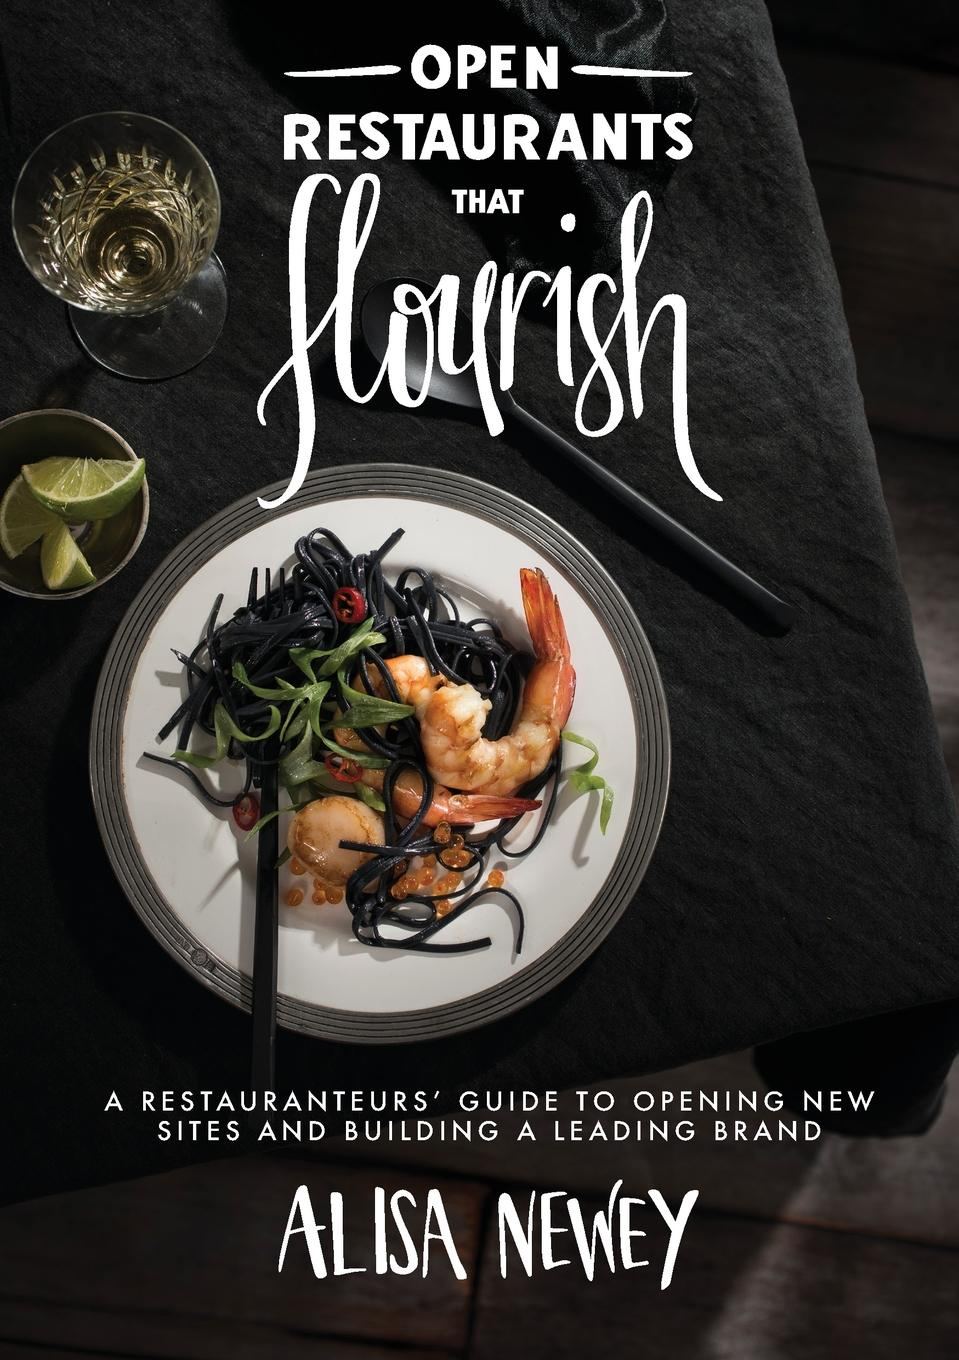 Newey Alisa Open Restaurants That Flourish. A Restauranteurs' Guide to Opening New Sites and Building a Leading Brand